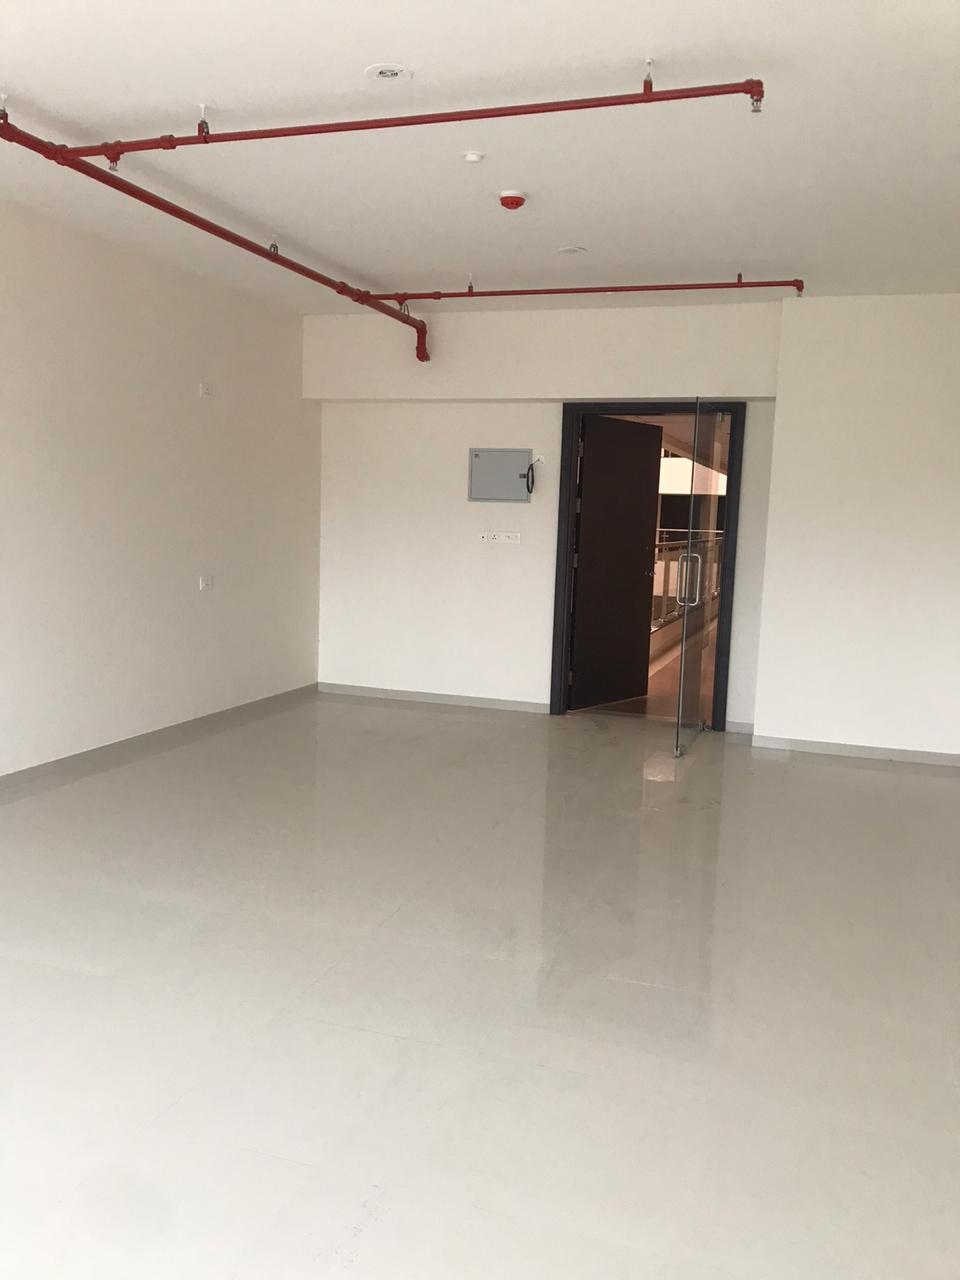 54Sqmt Office premises for Rent in Patto-Panjim, North-Goa. (25k)